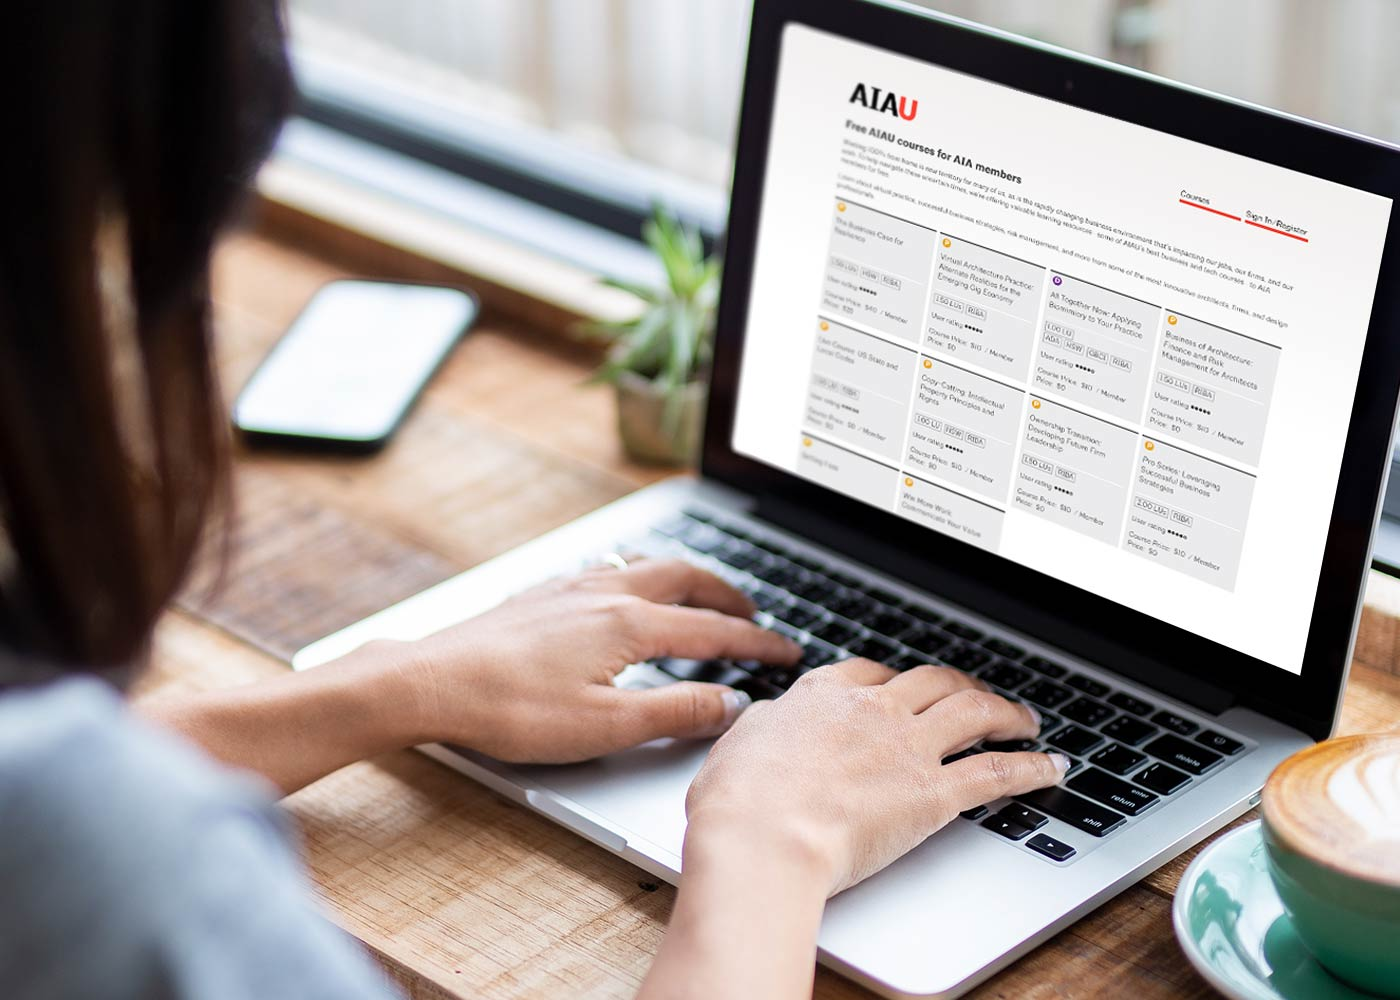 FREE Courses to support your practice from AIAU